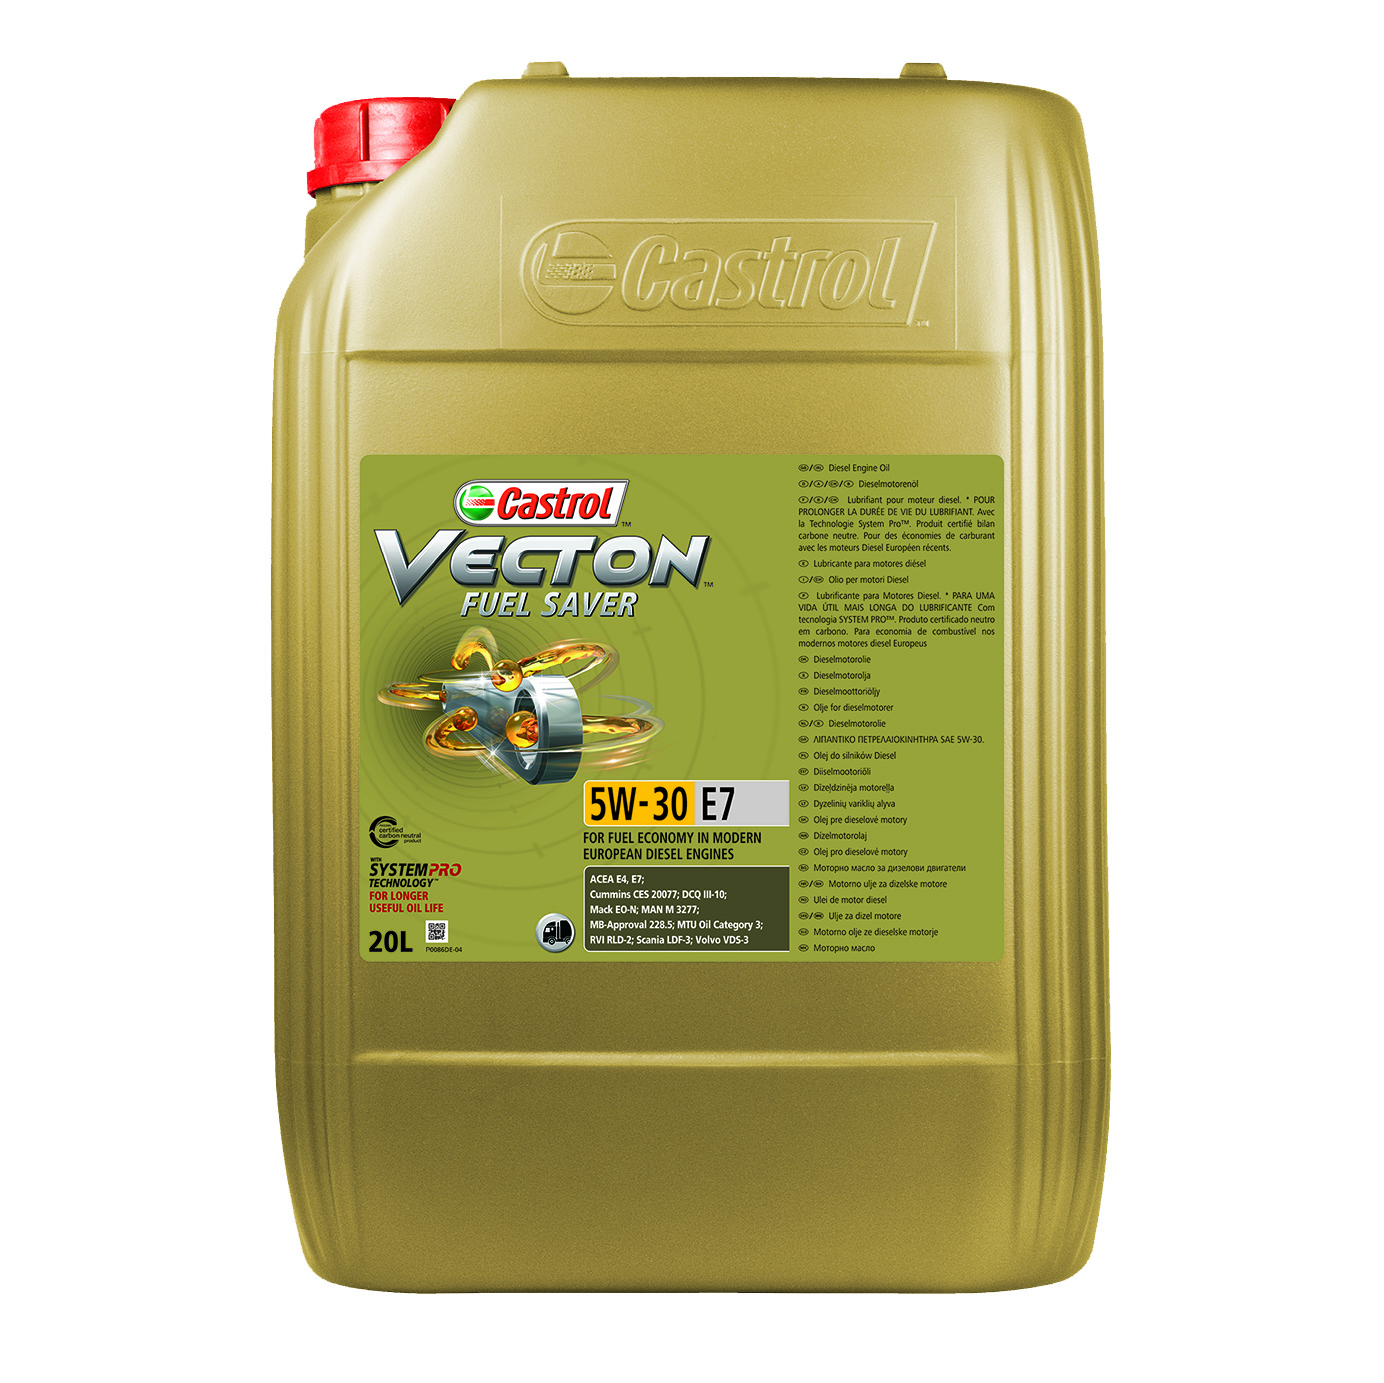 Vecton Fuel Saver 5W-30 E7